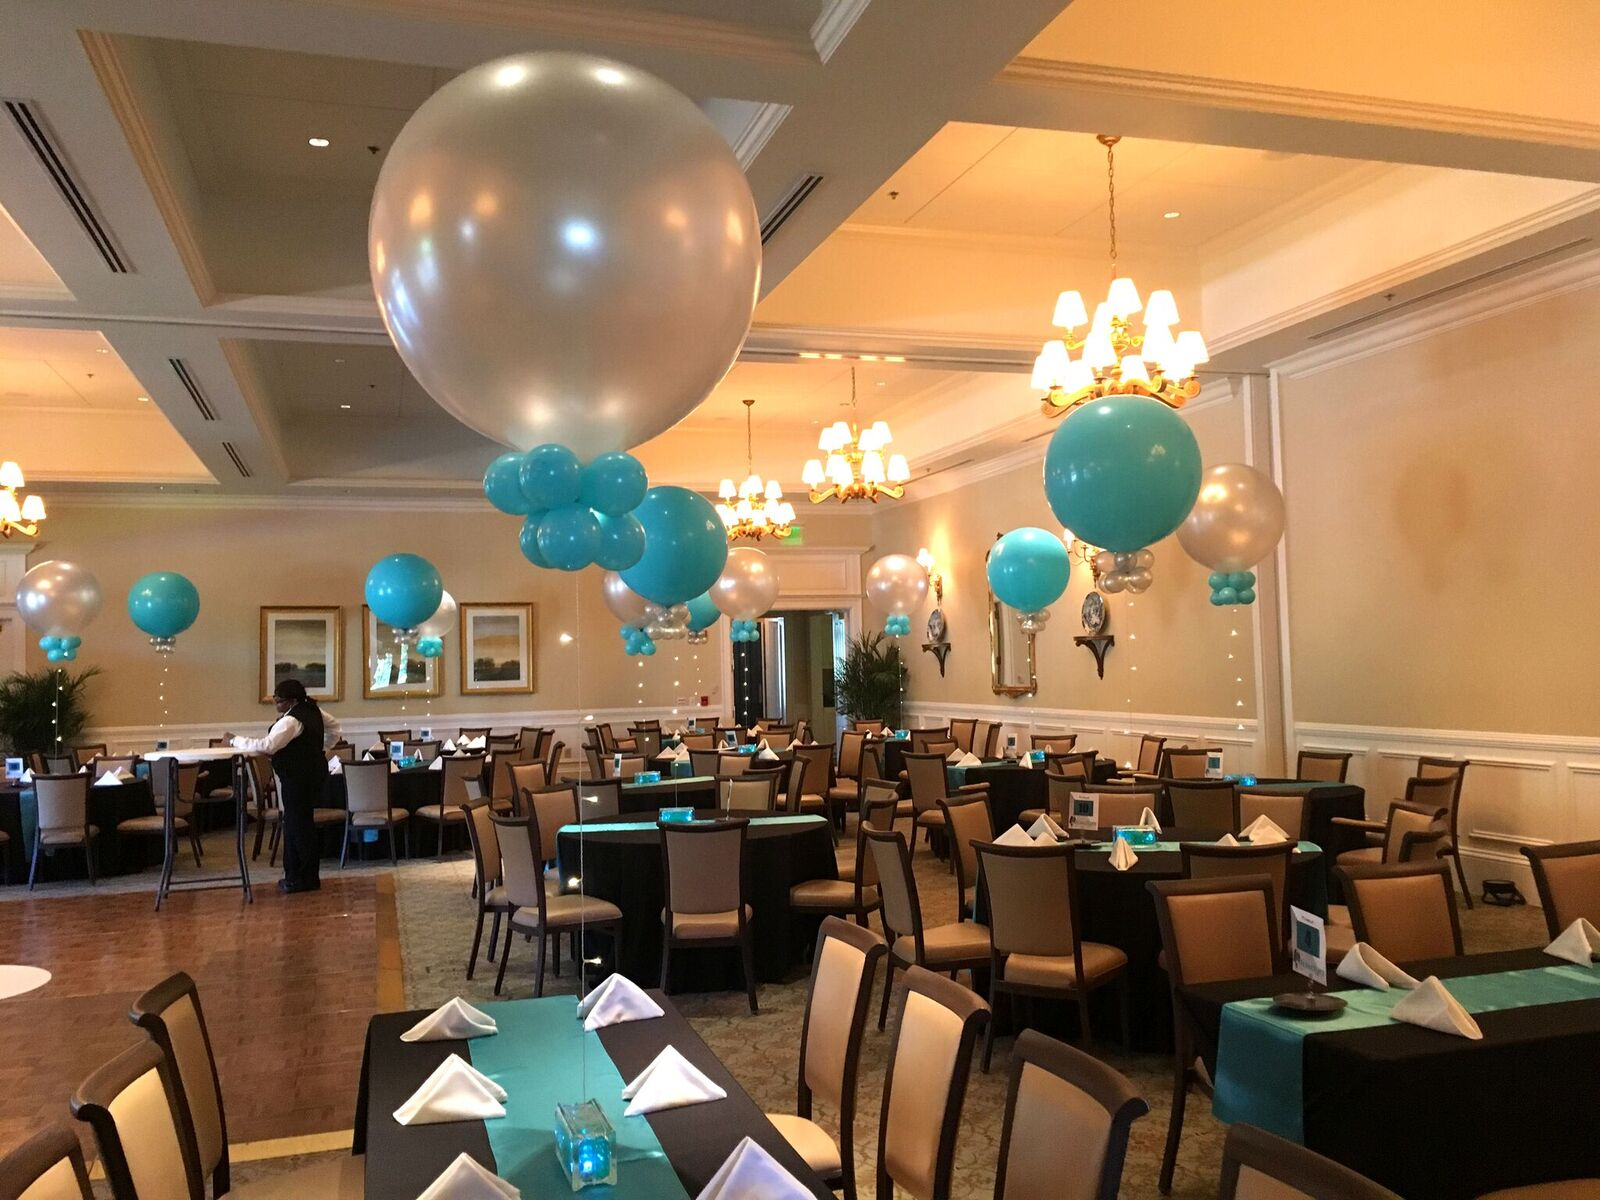 3-foot Round Balloons |starting at $25 each - With fabric ribbon +$10With lighted ribbon +$10With water bead base +$10With confetti +$20With tassel ribbon +$20If using multiple add-ons, the pricing per add-on will be reduced.